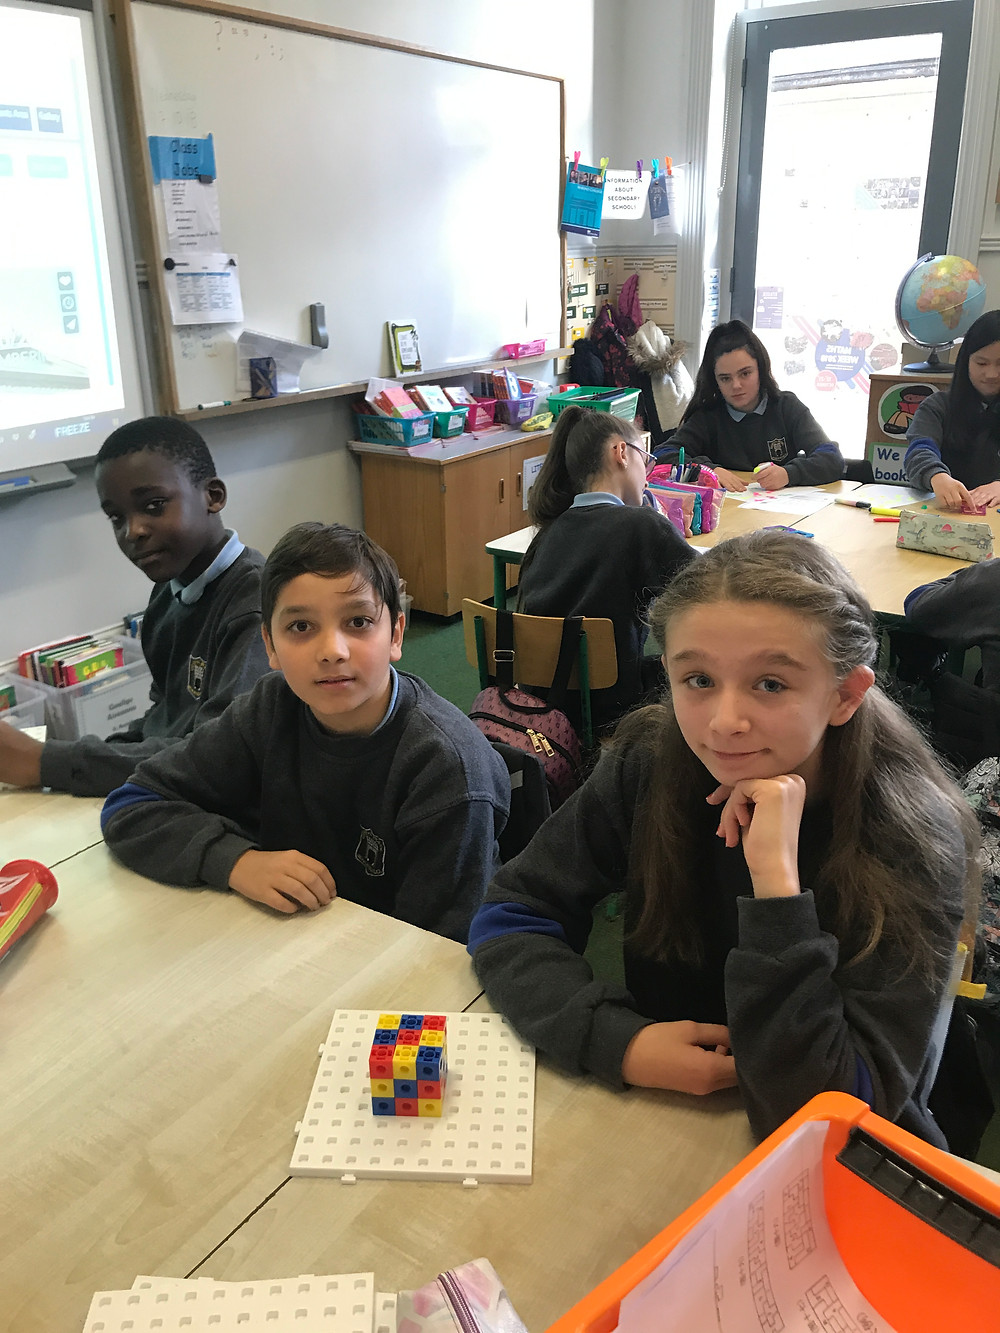 Children participating in some of the fun maths week activities taking place in the school.